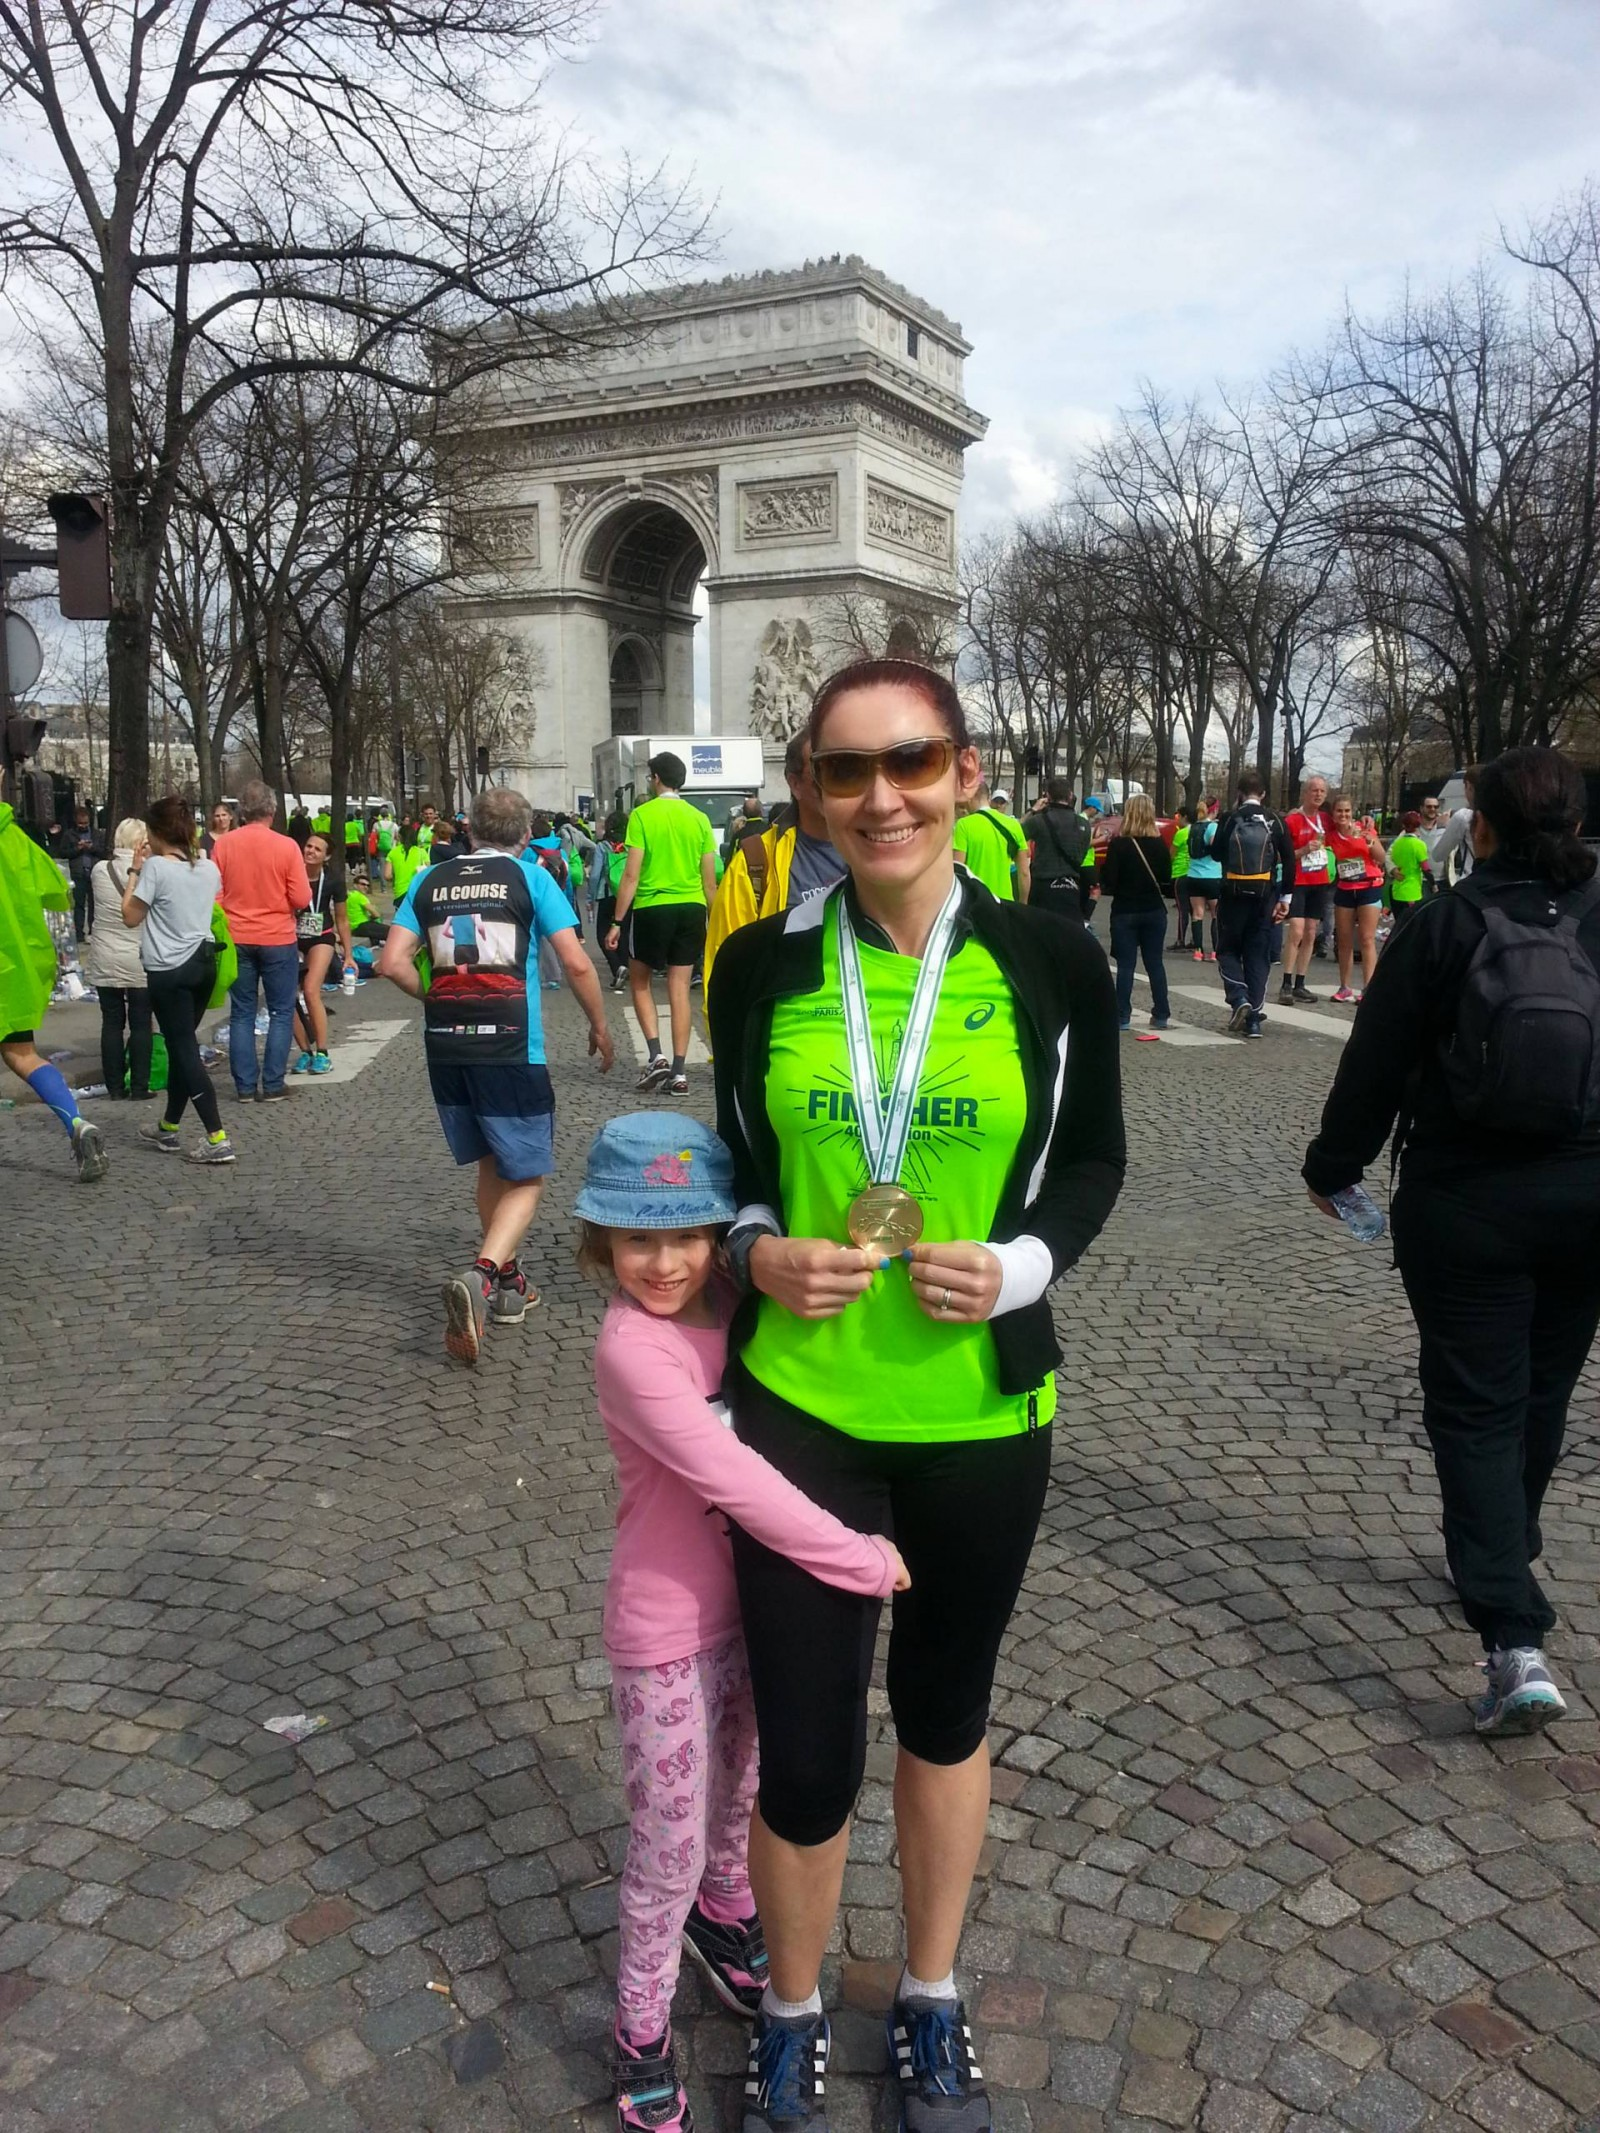 Marathon finish Arc de Triomphe